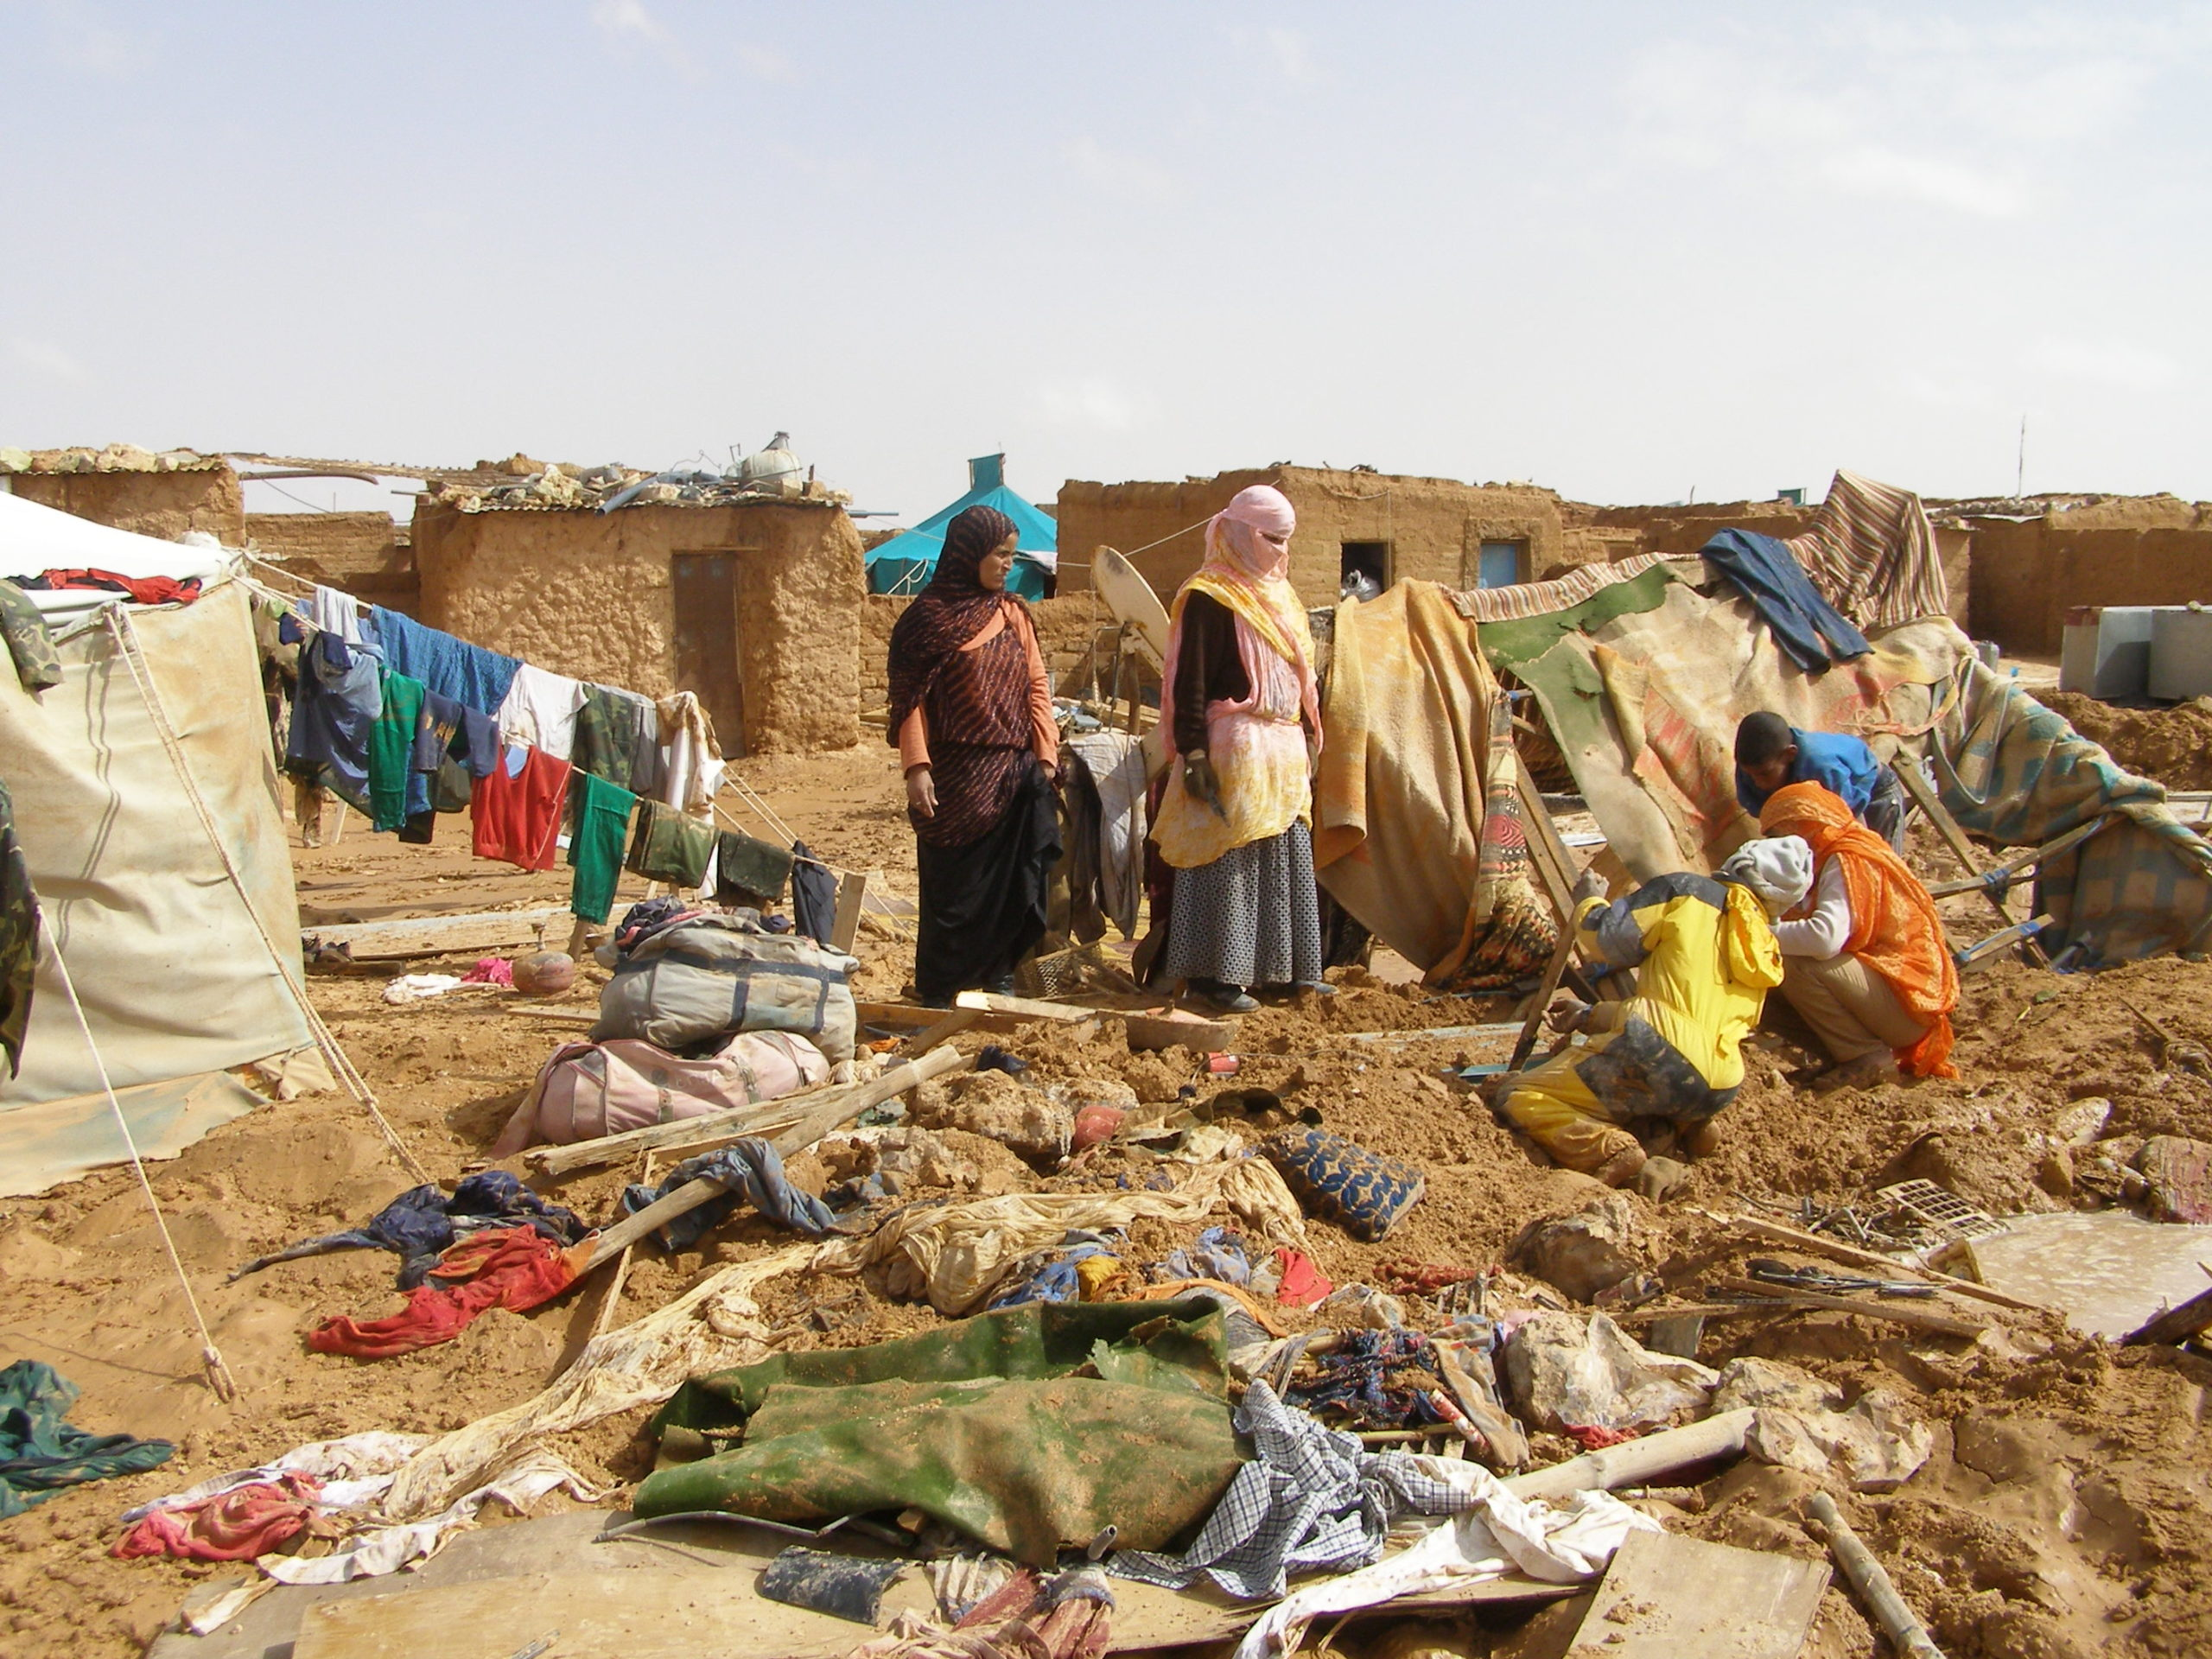 5 Things to Know About Poverty in Algeria